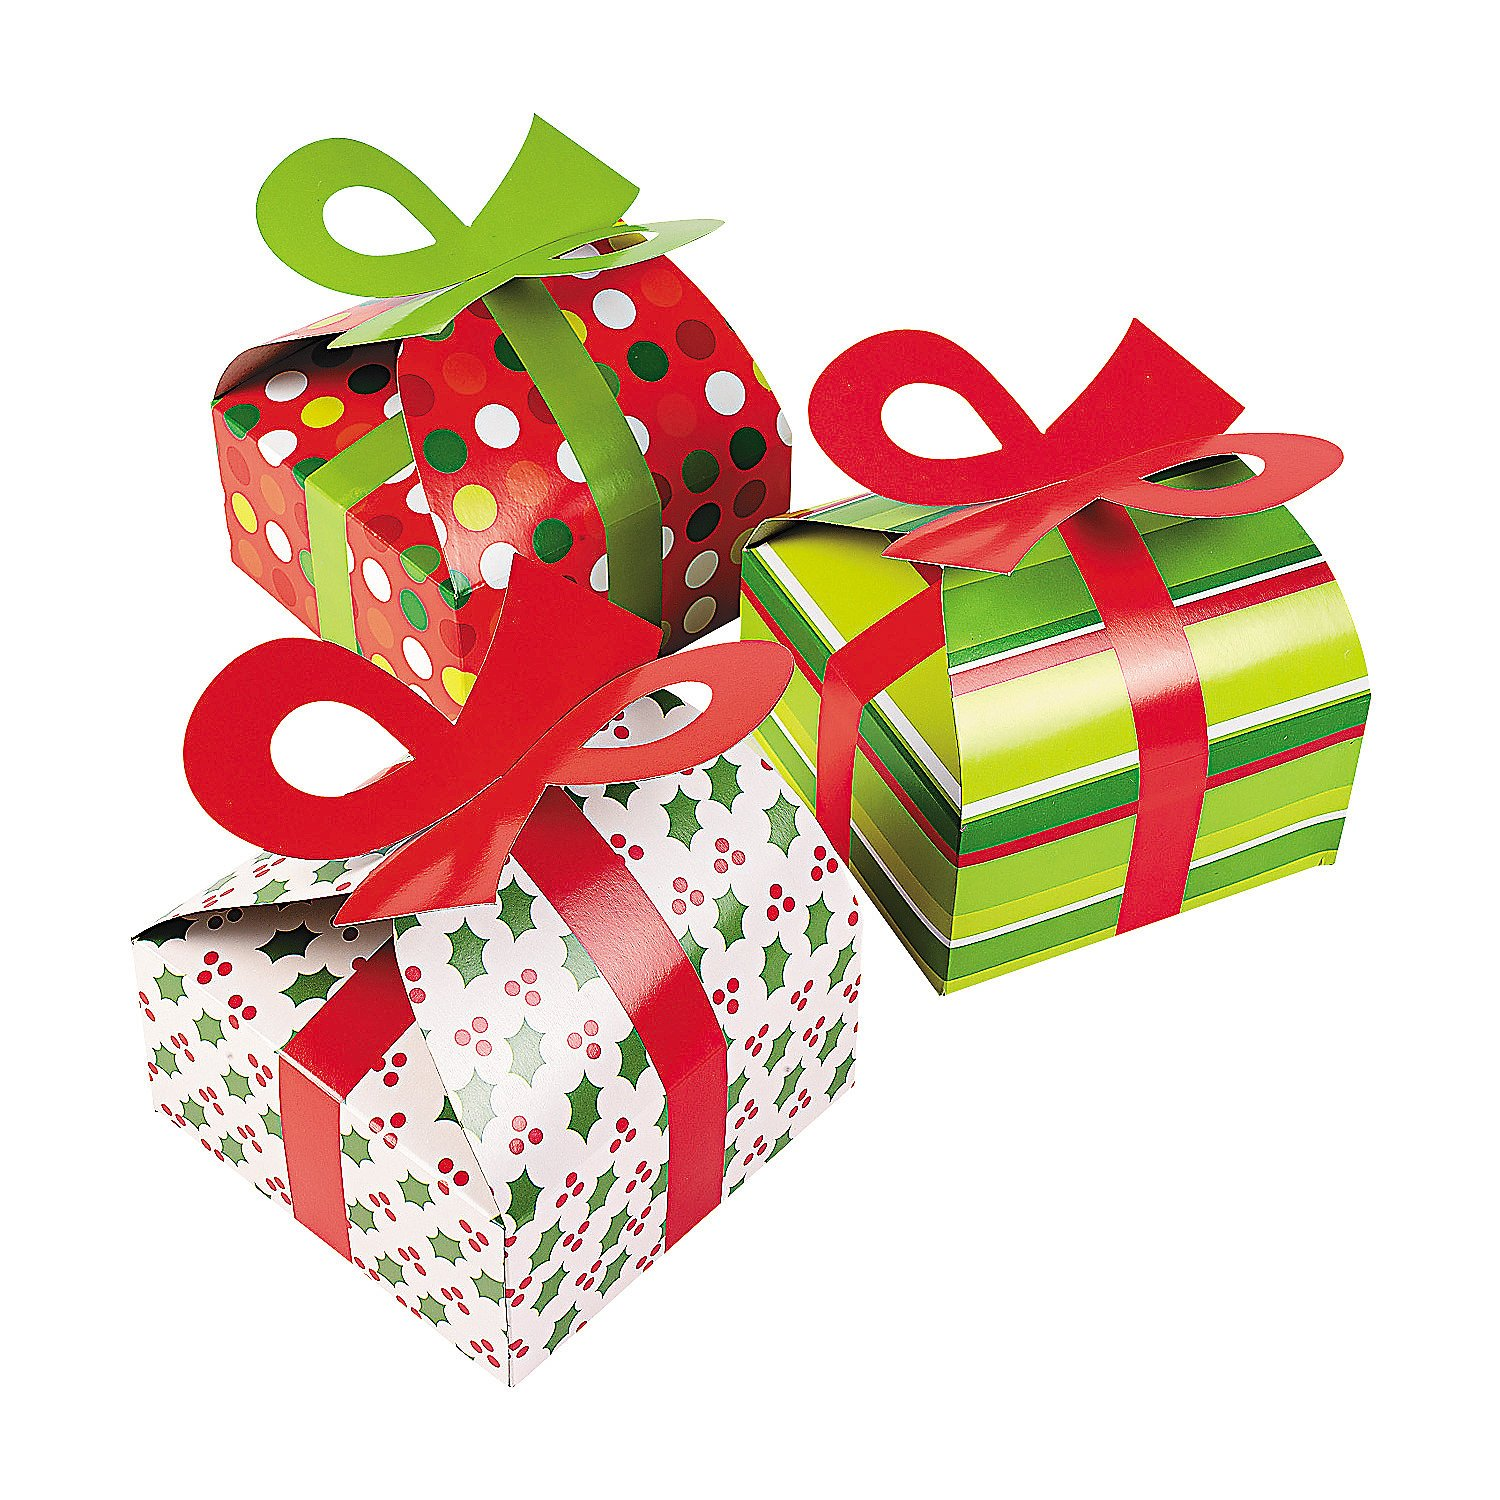 3D Christmas Gift Boxes With Bow - Party Favor & Goody Bags & Paper Goody Bags & Boxes; 12 Pack